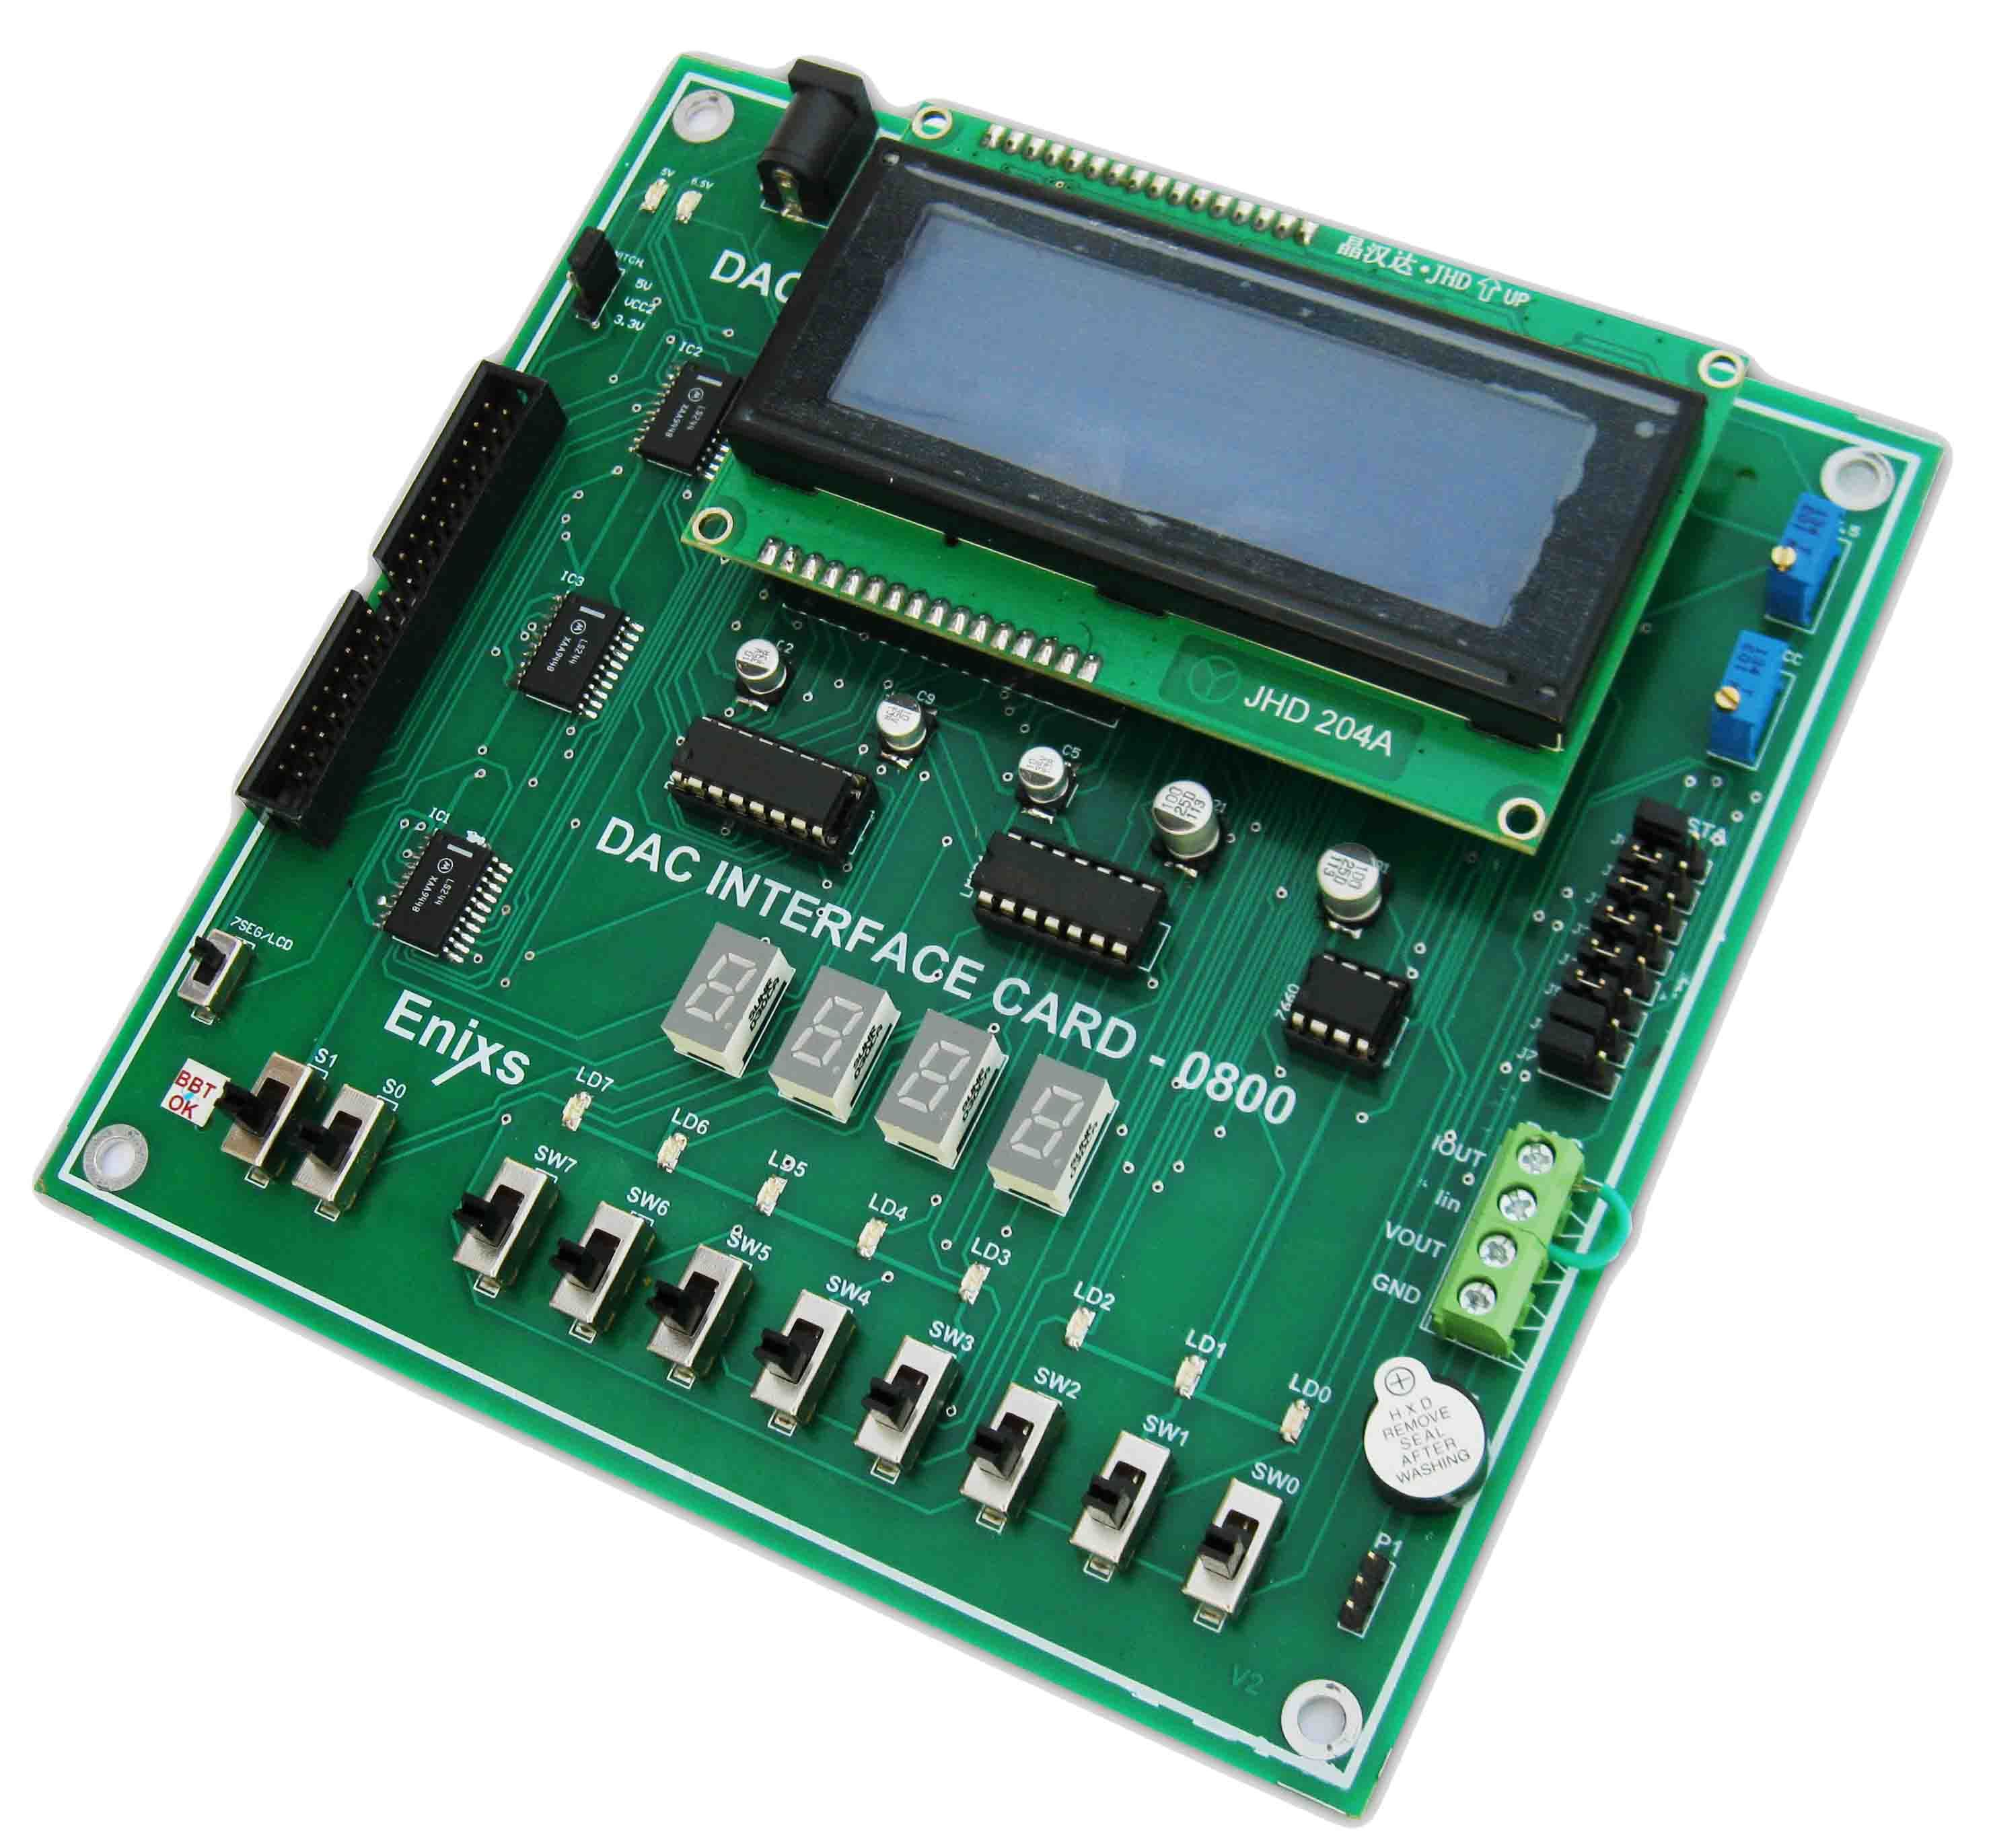 small resolution of dac0800 interface card the dac interface card is designed to demonstrate the digital to analog conversion using dac 0800 chip